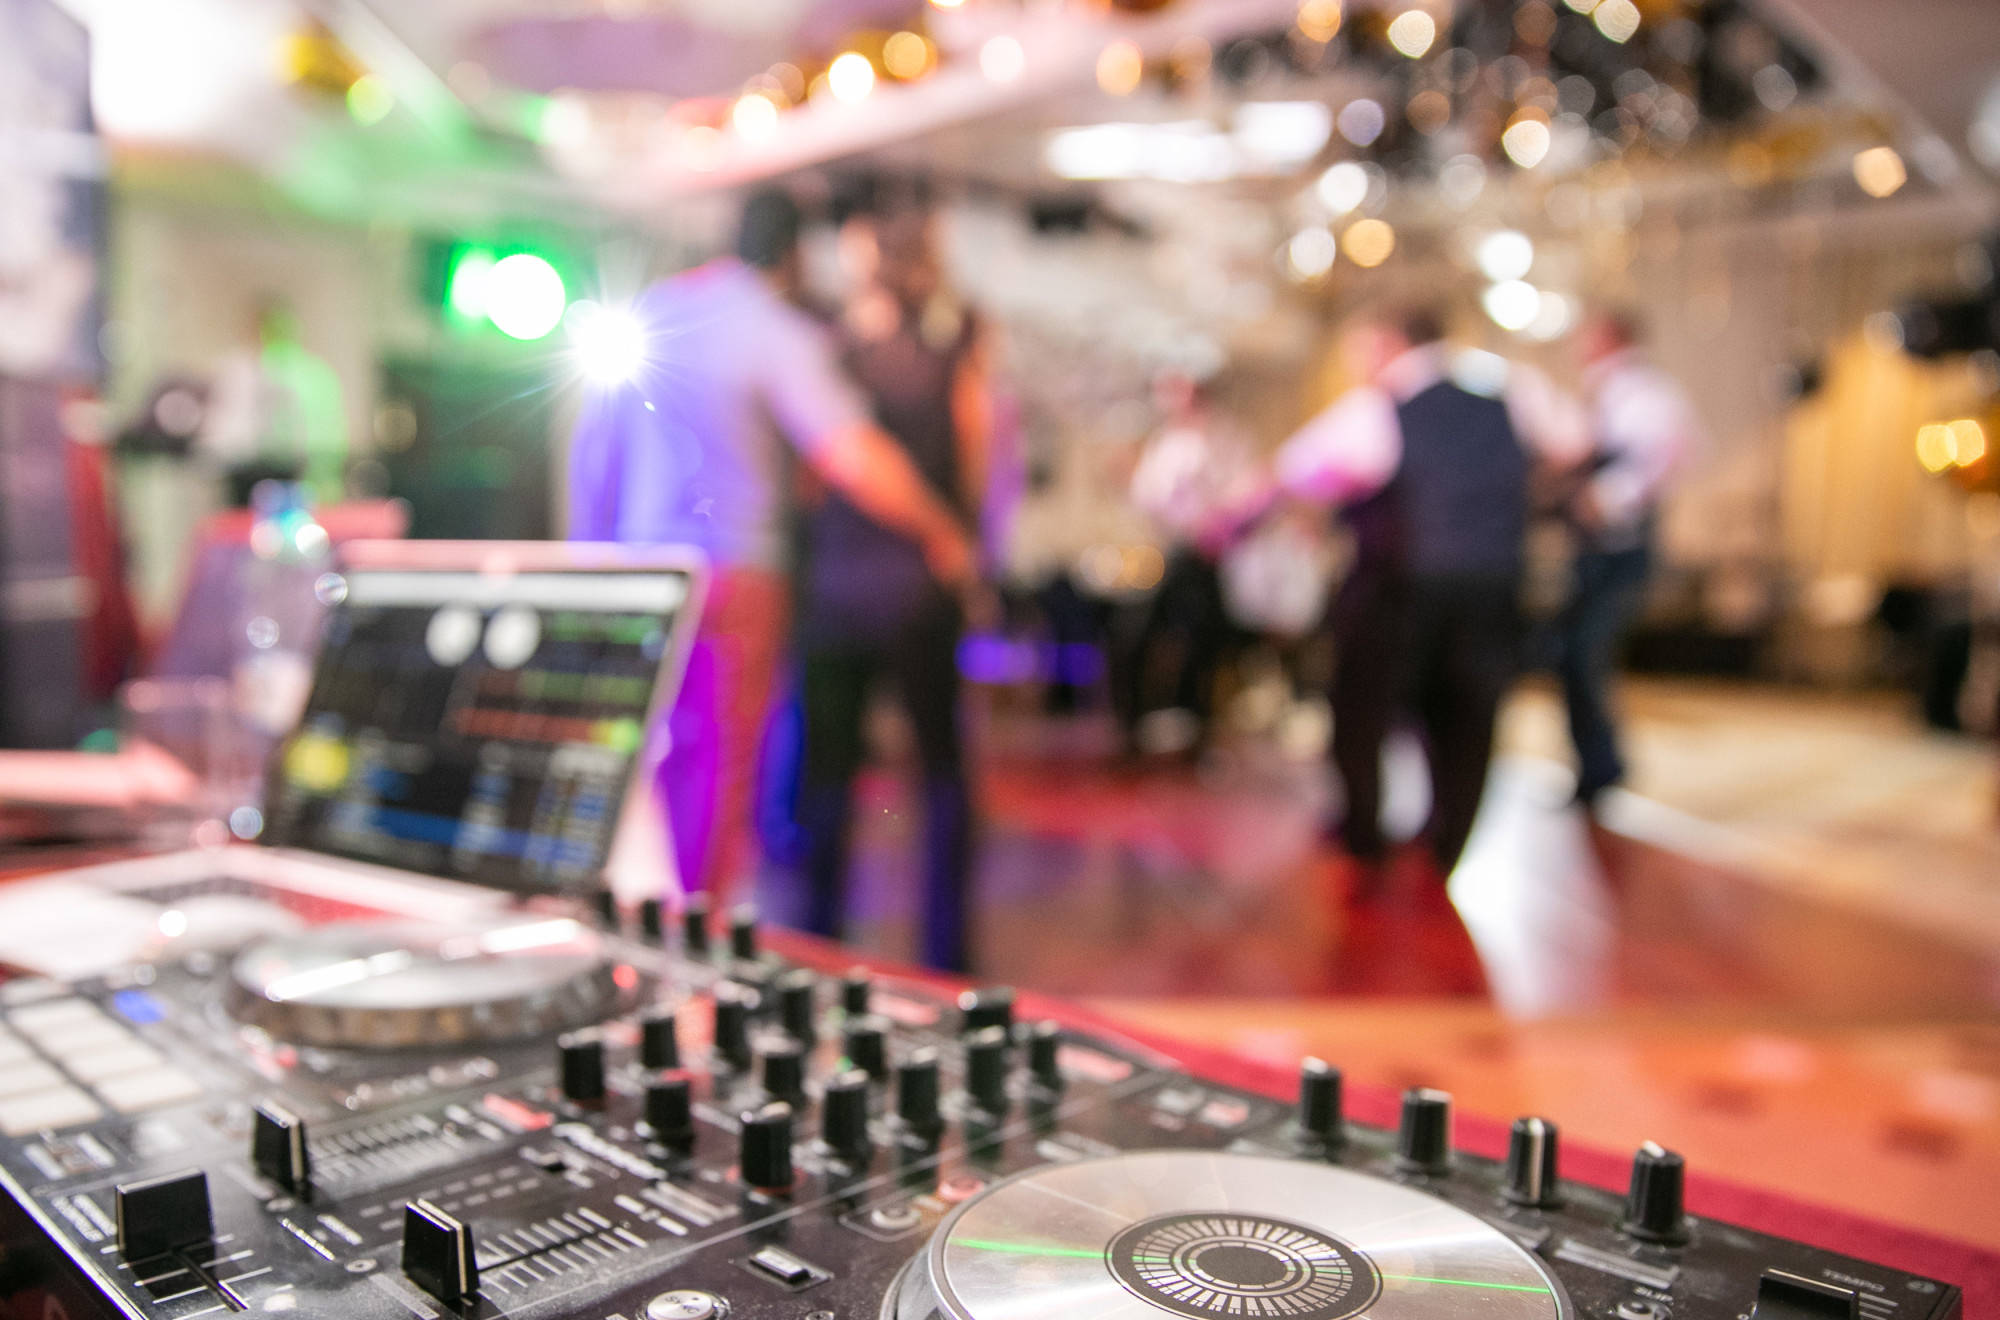 12 Wedding Reception Entertainment Ideas That'll Wow Your Guests